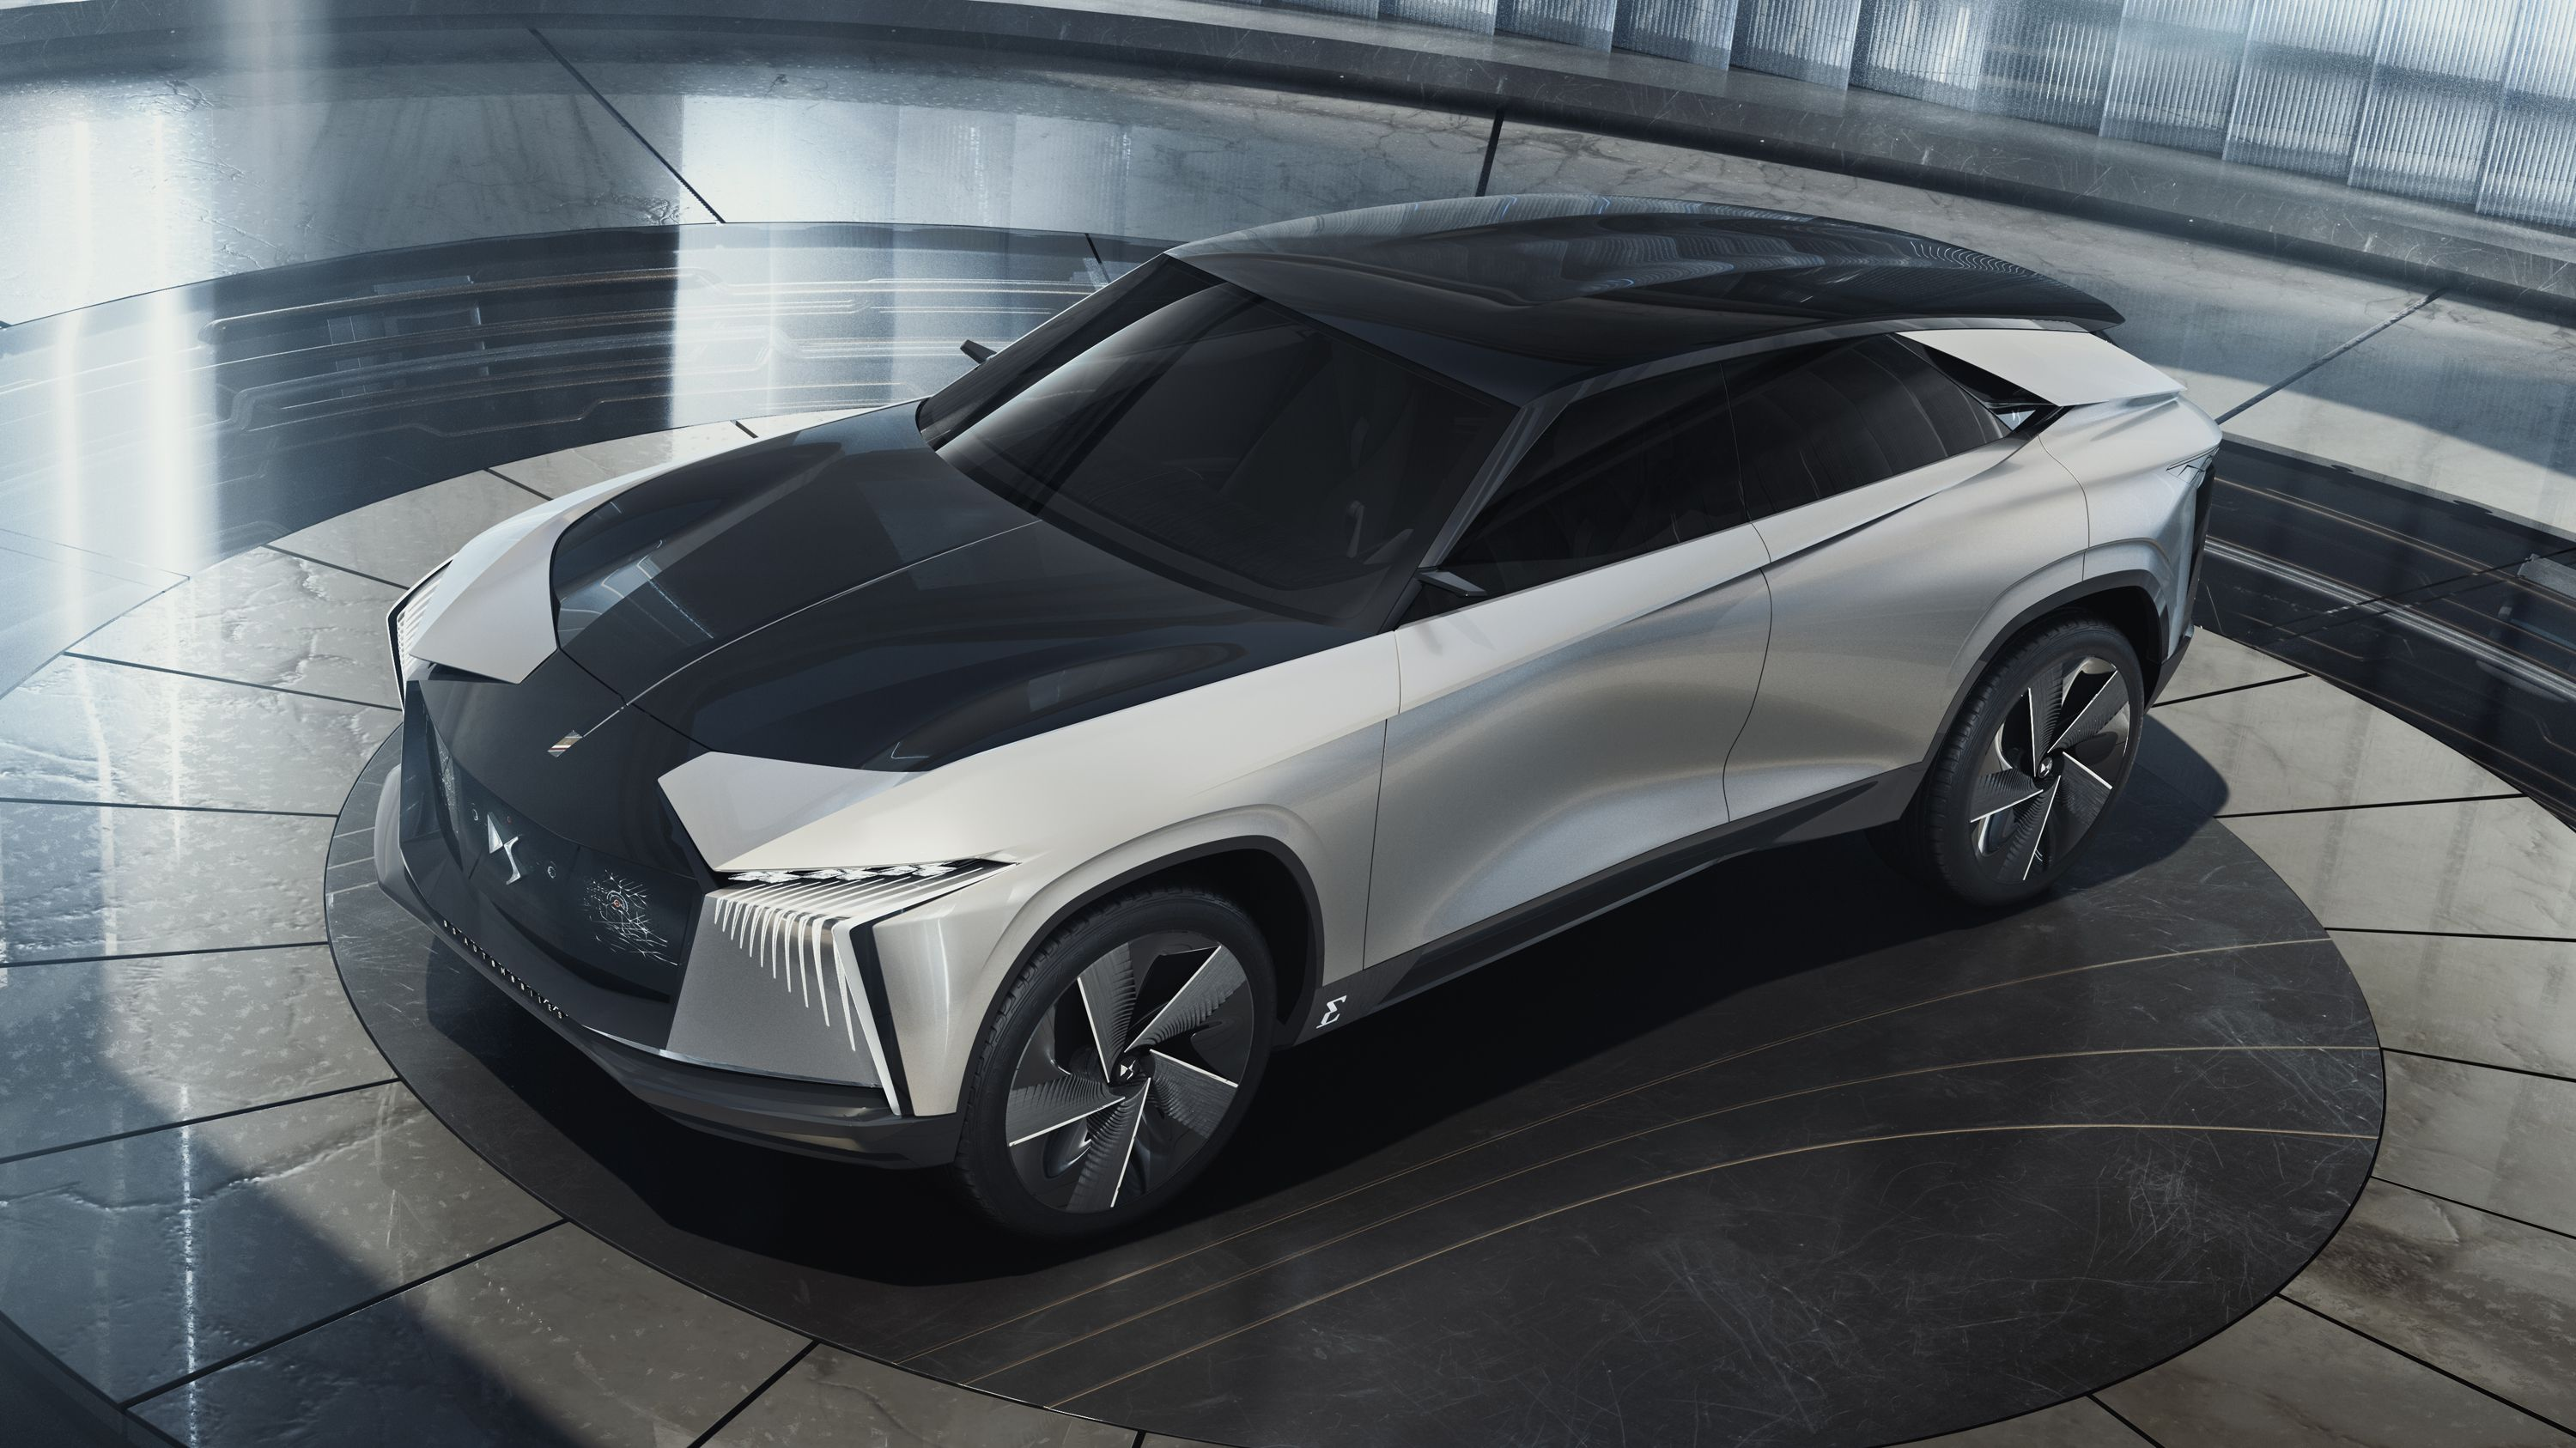 Ds Aero Sport Lounge Crossover Concept Is Stylish Electric Luxury In 2020 Concept Cars Luxury Car Brands Ds Automobiles